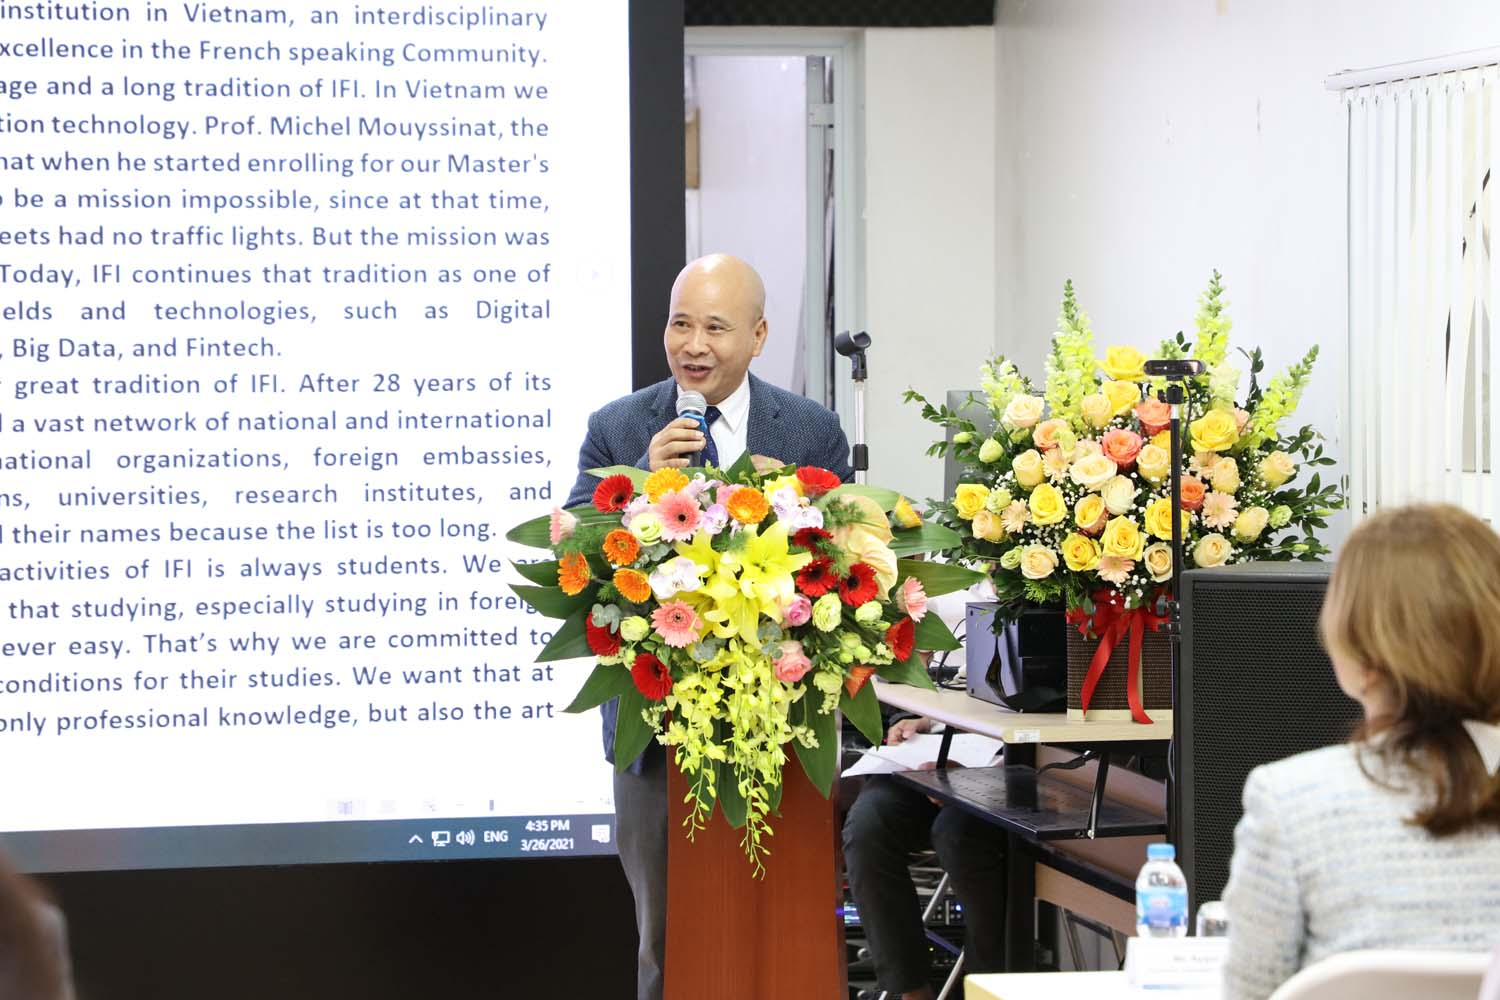 Dr. Ngo Tu Lap, President of the Scientific Council, Director